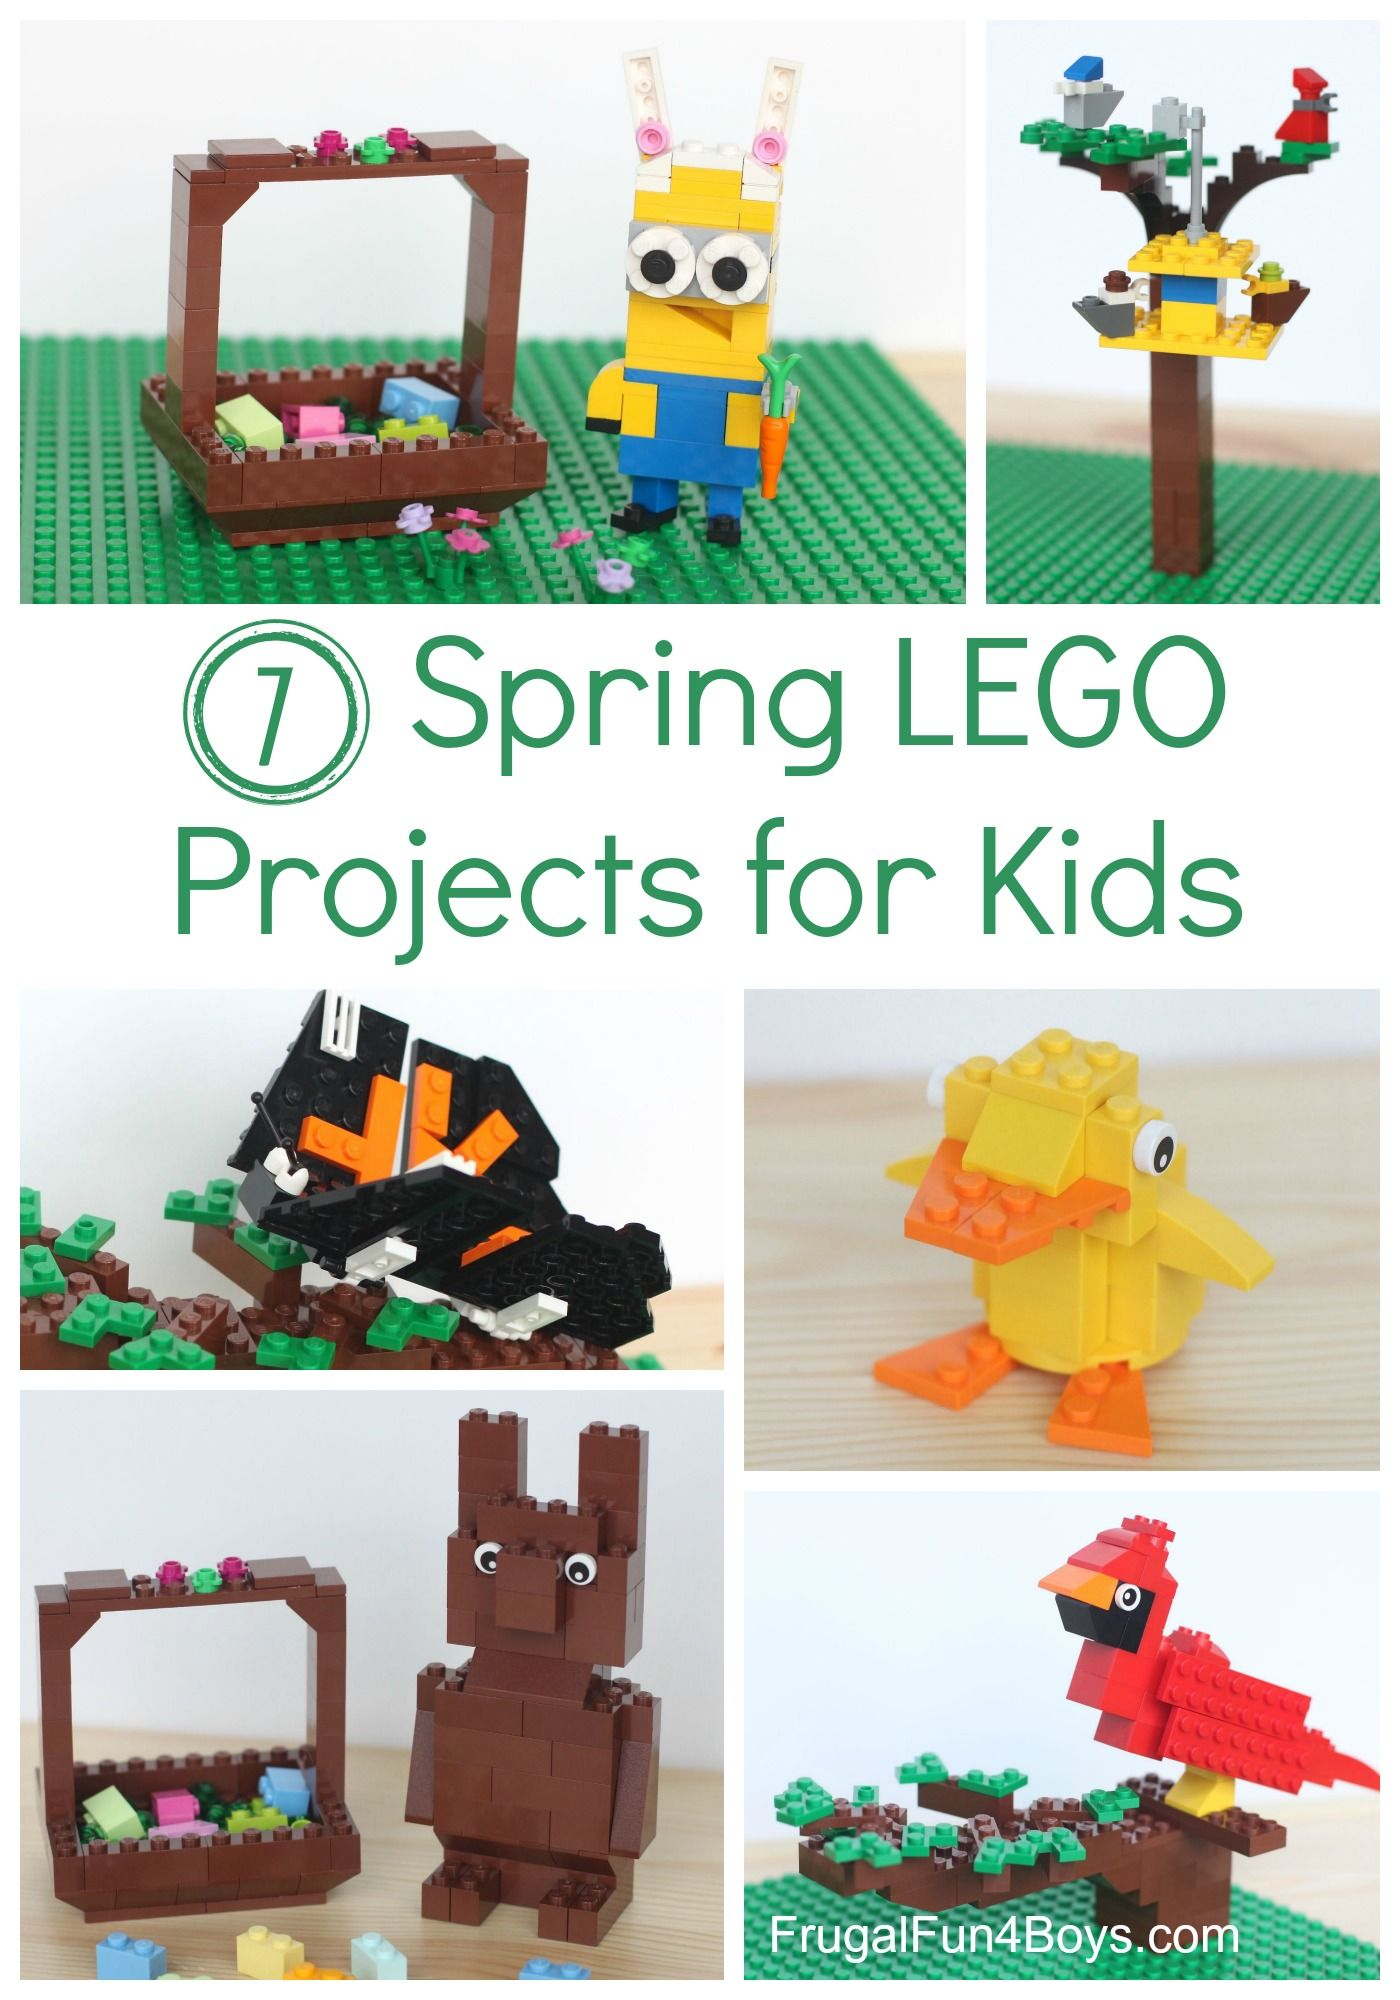 LEGO Easter Ducks with instructions Build Your Own!